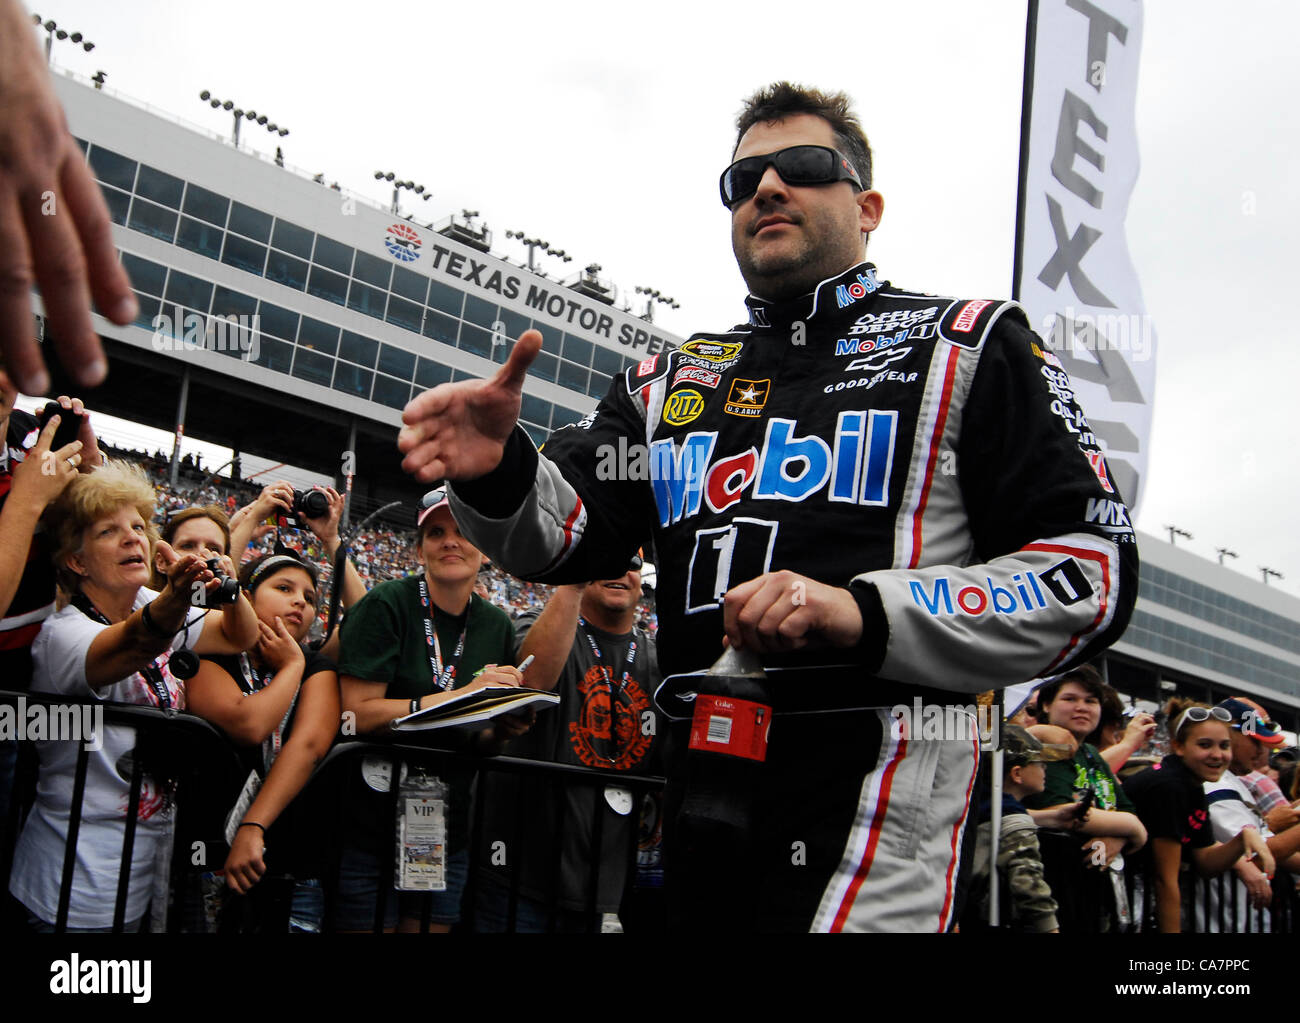 April 14, 2012 - Fort Worth, TX, USA - April 14, 2012 Ft. Worth, Tx. USA. Tony Stewart before the NASCAR Sprint Stock Photo